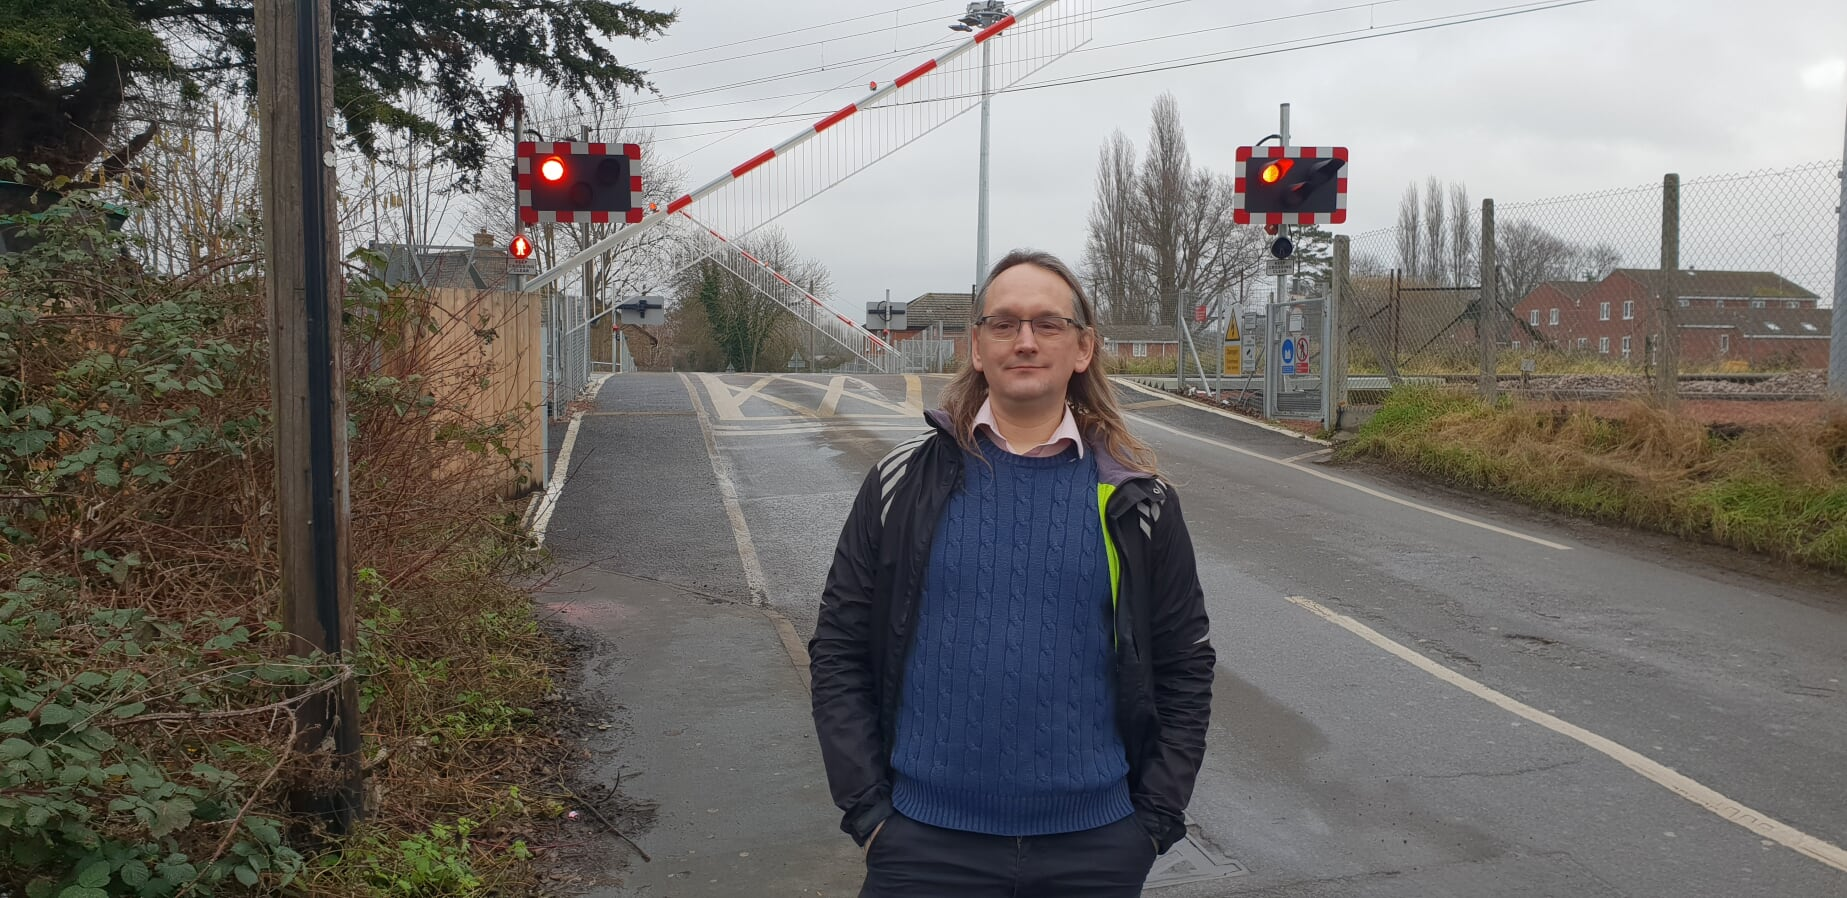 Owen Dunn in front of the level crossing